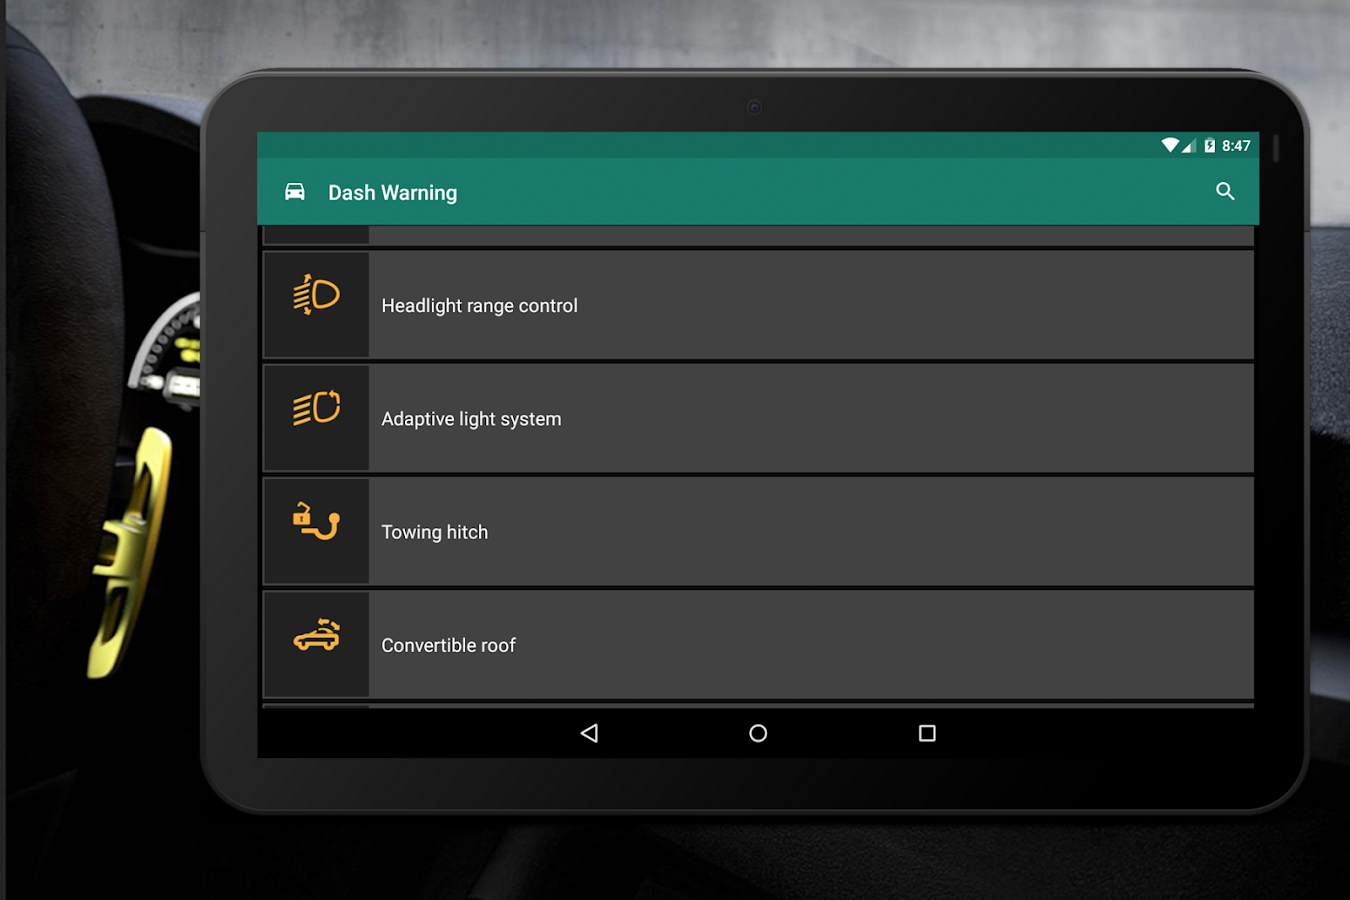 Dashboard warning lights android apps on google play dashboard warning lights screenshot buycottarizona